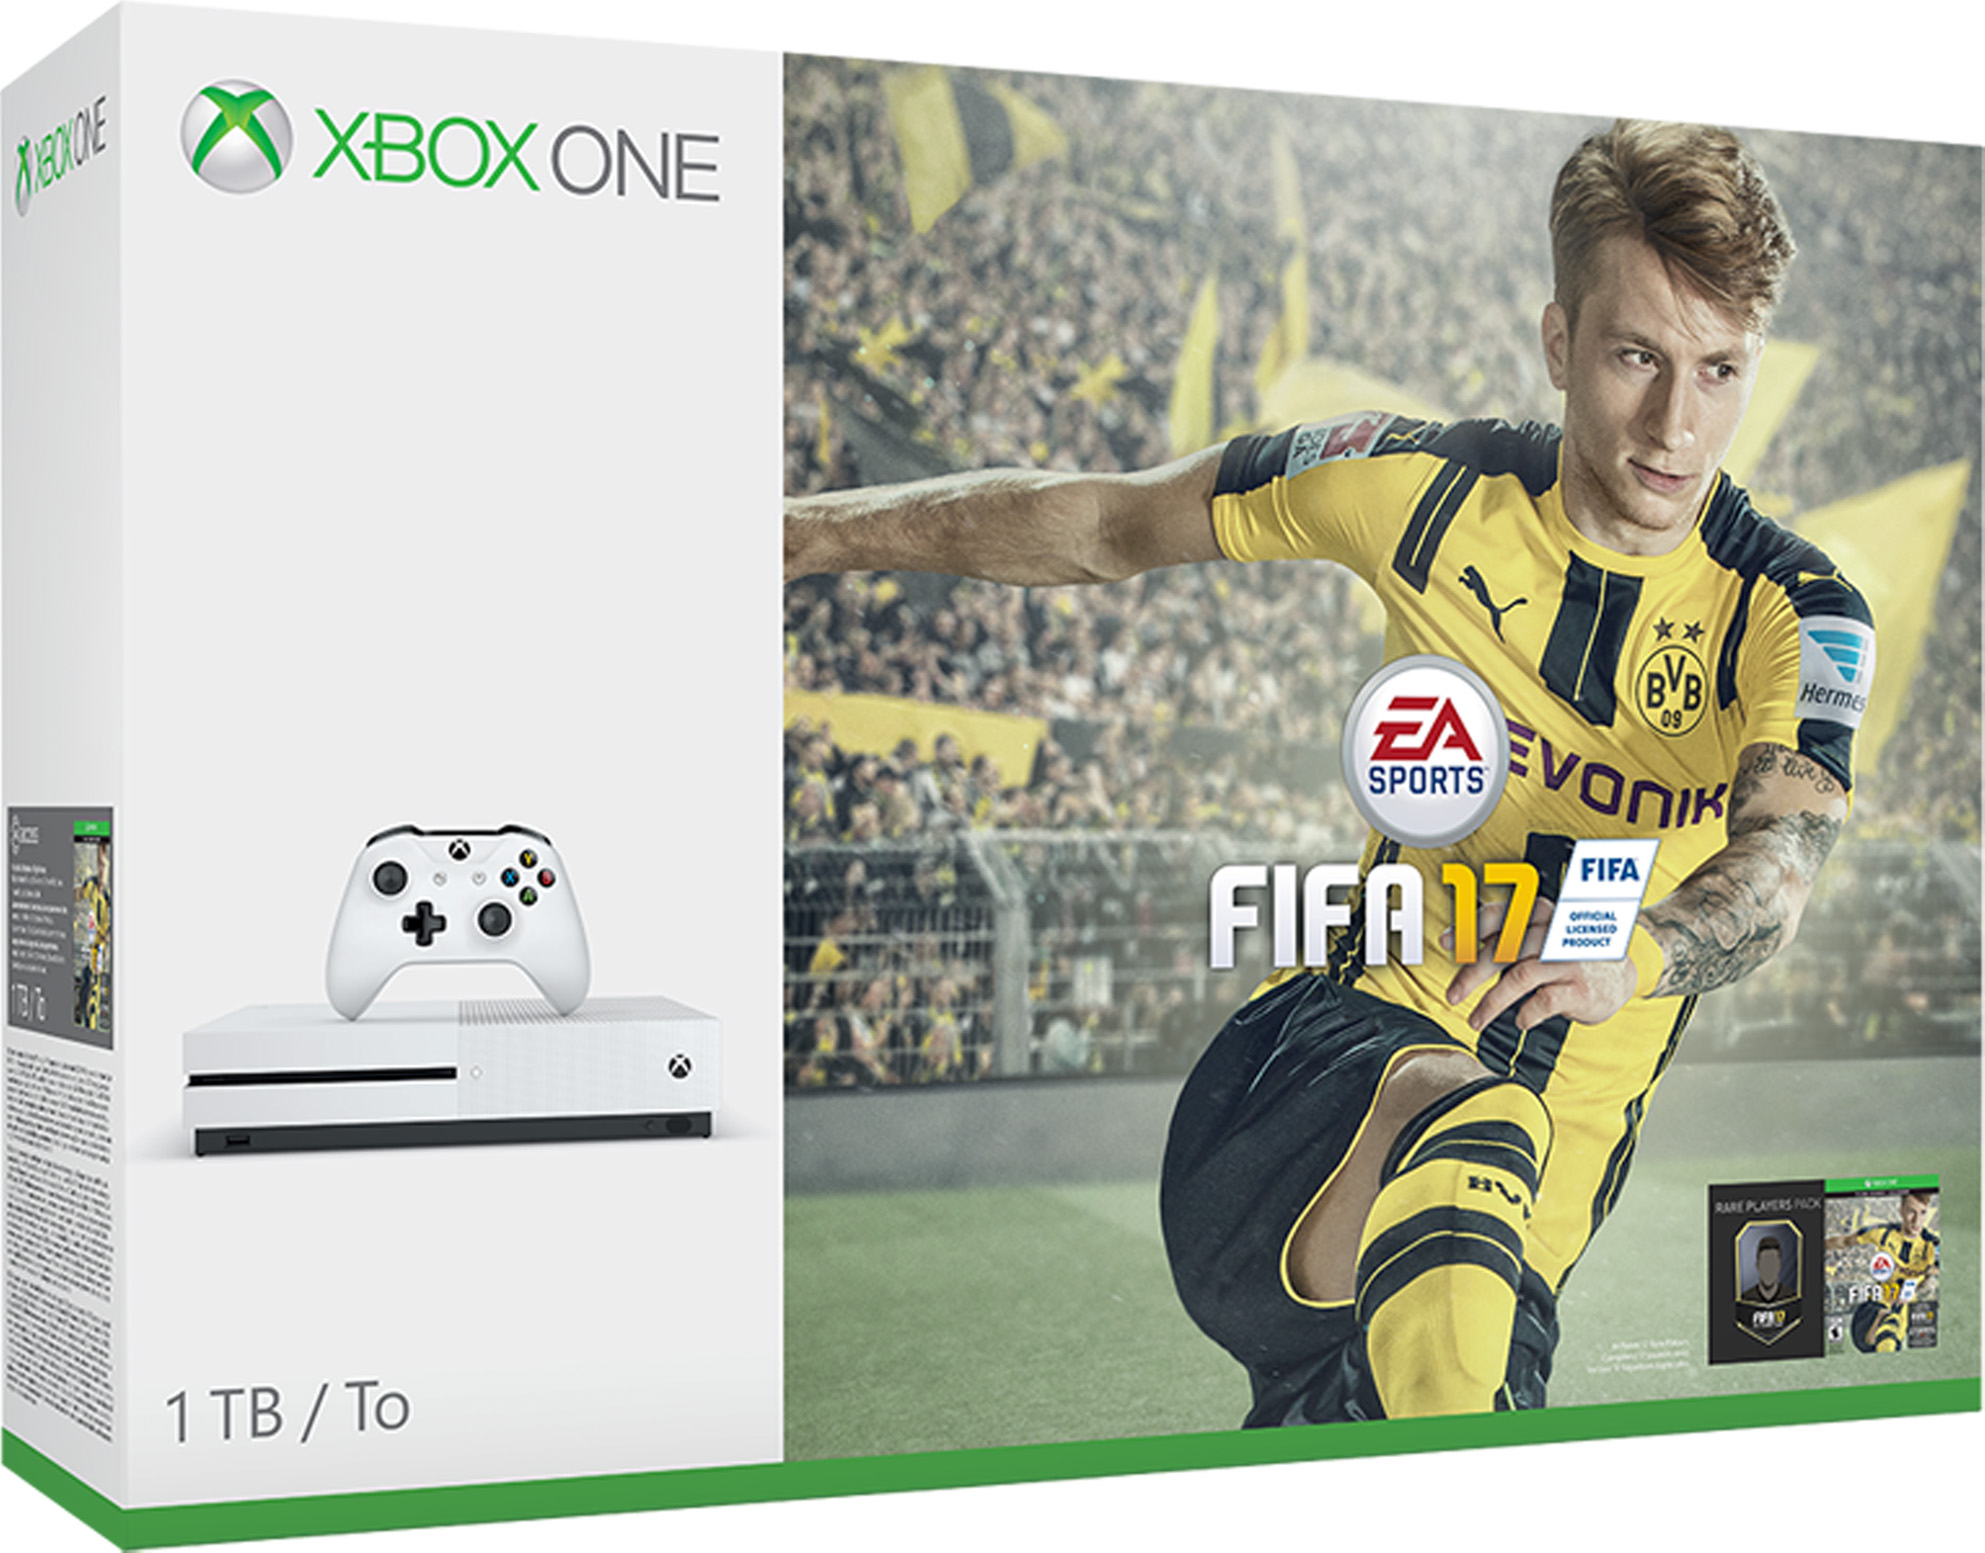 Xbox One S Console - FIFA 17 Bundle